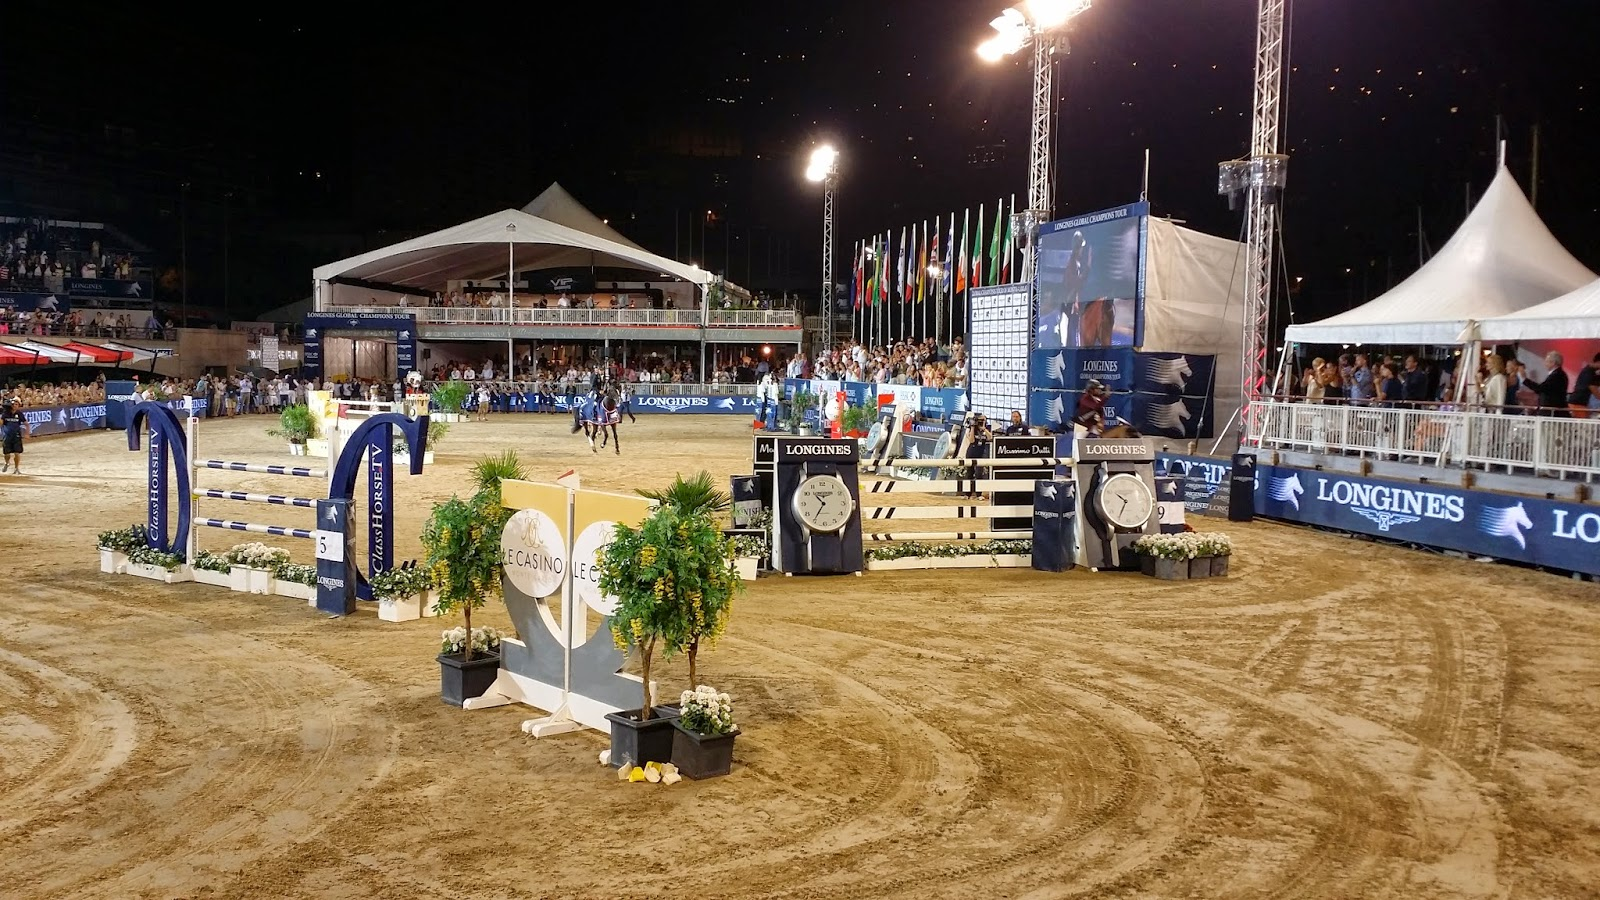 LONGINES Conquest, Global Champions Tour 2014 Montecarlo